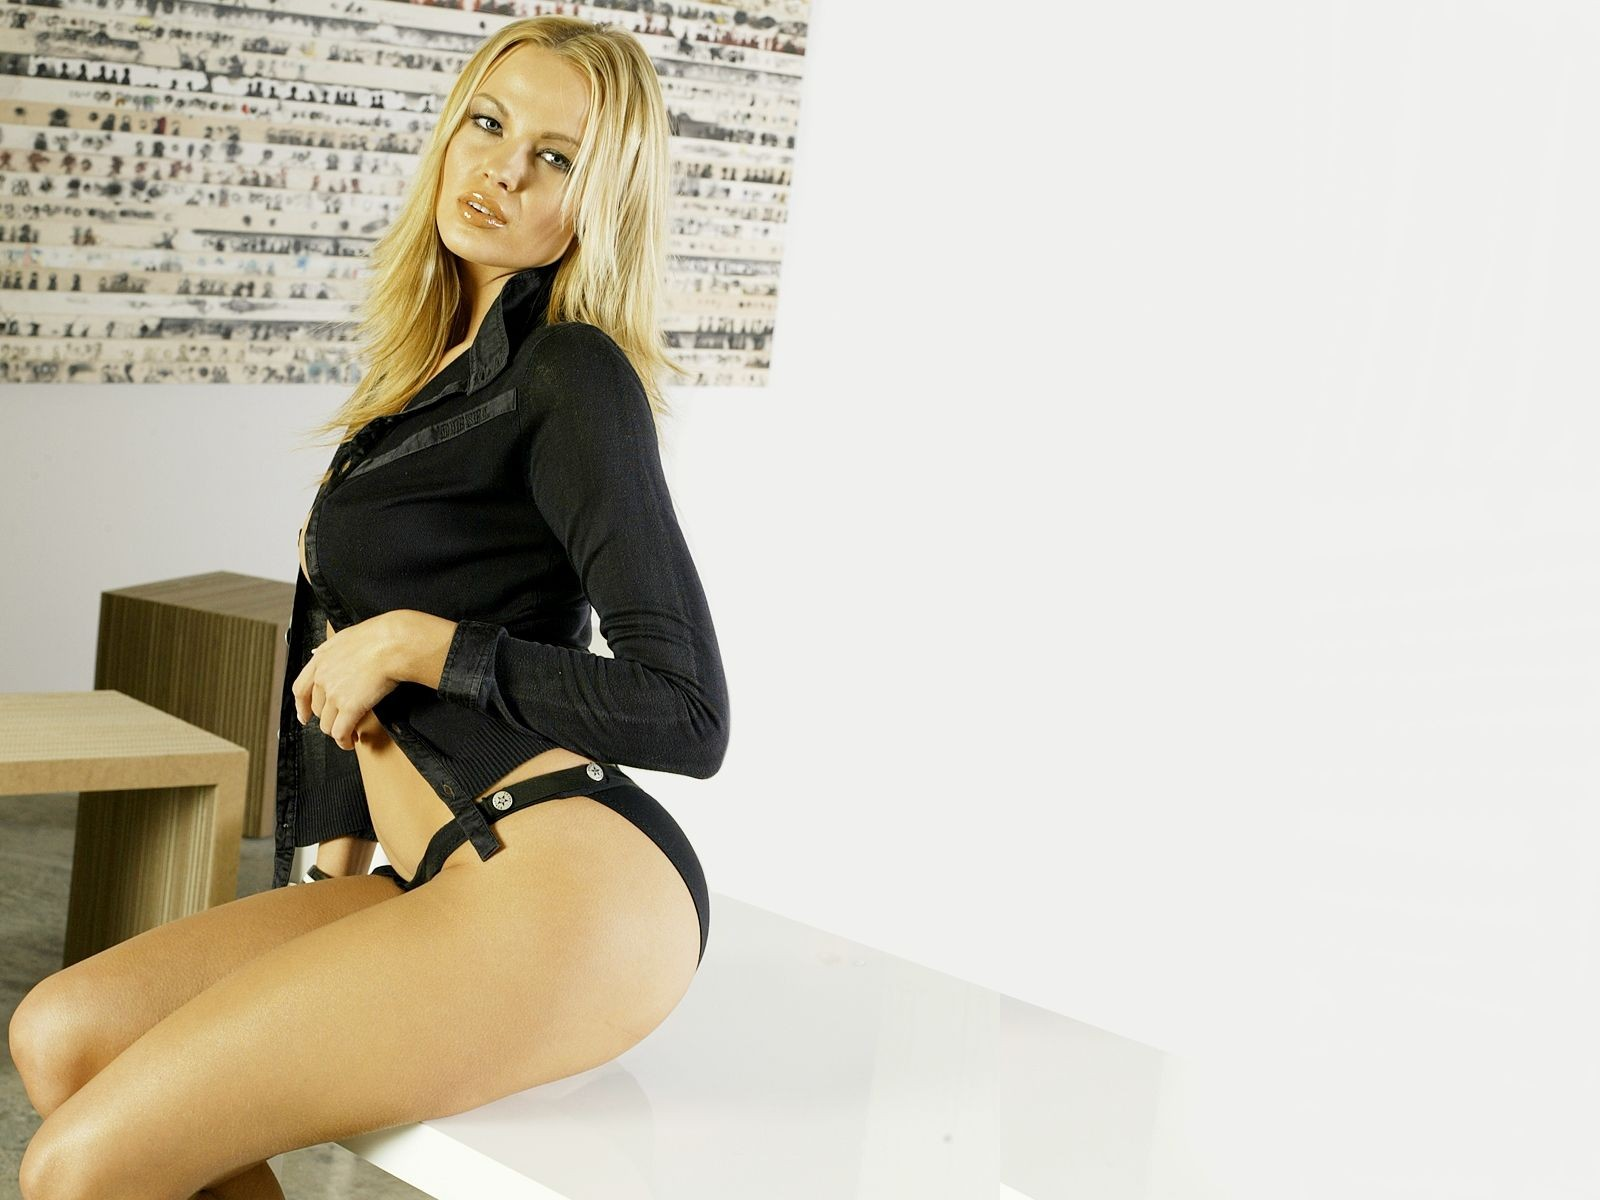 blondes woman Irina Voronina HD Wallpaper